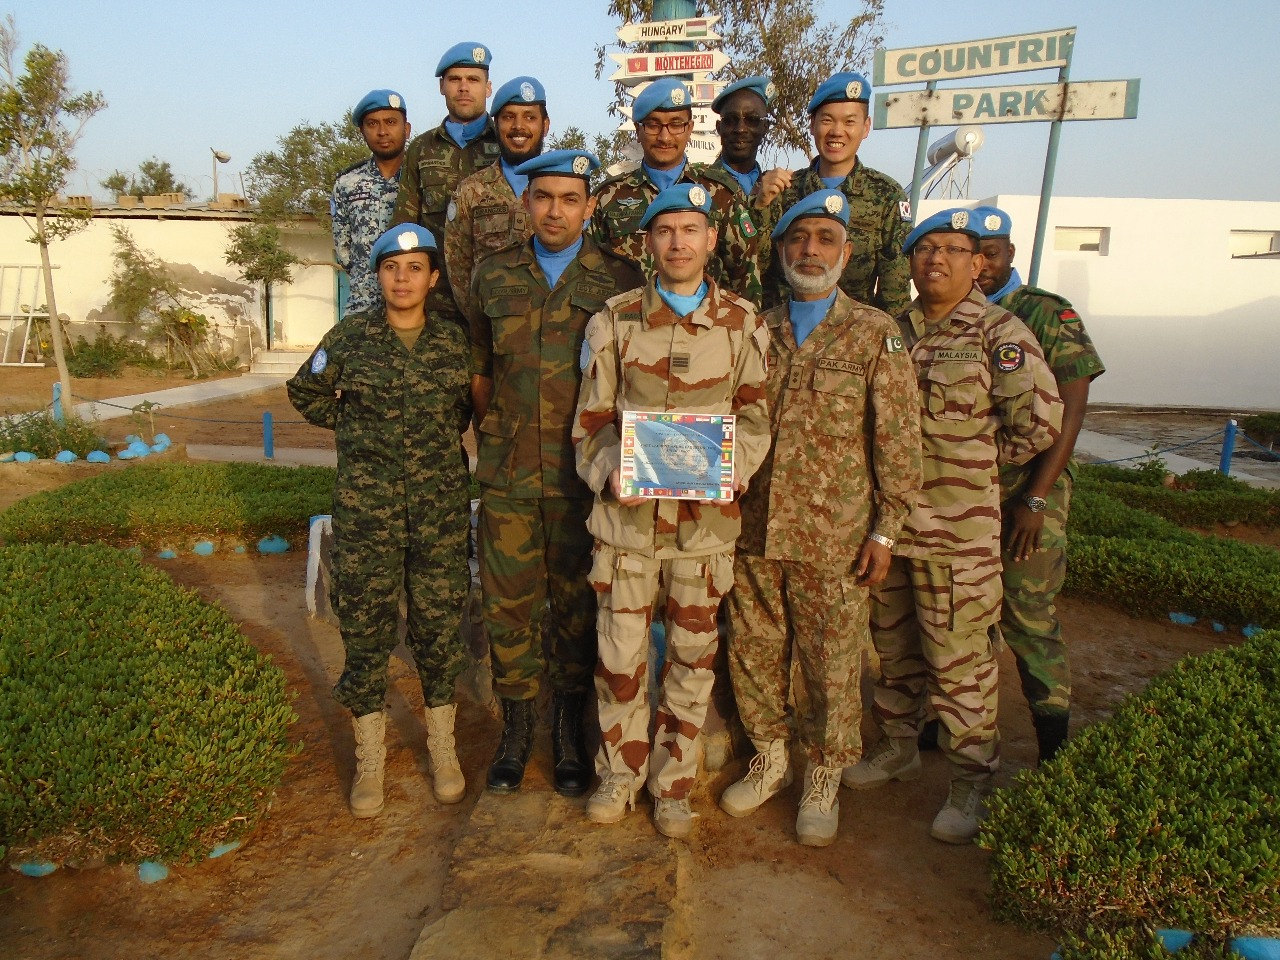 Female Honduran Officer Takes Part in Peacekeeping Mission for First Time